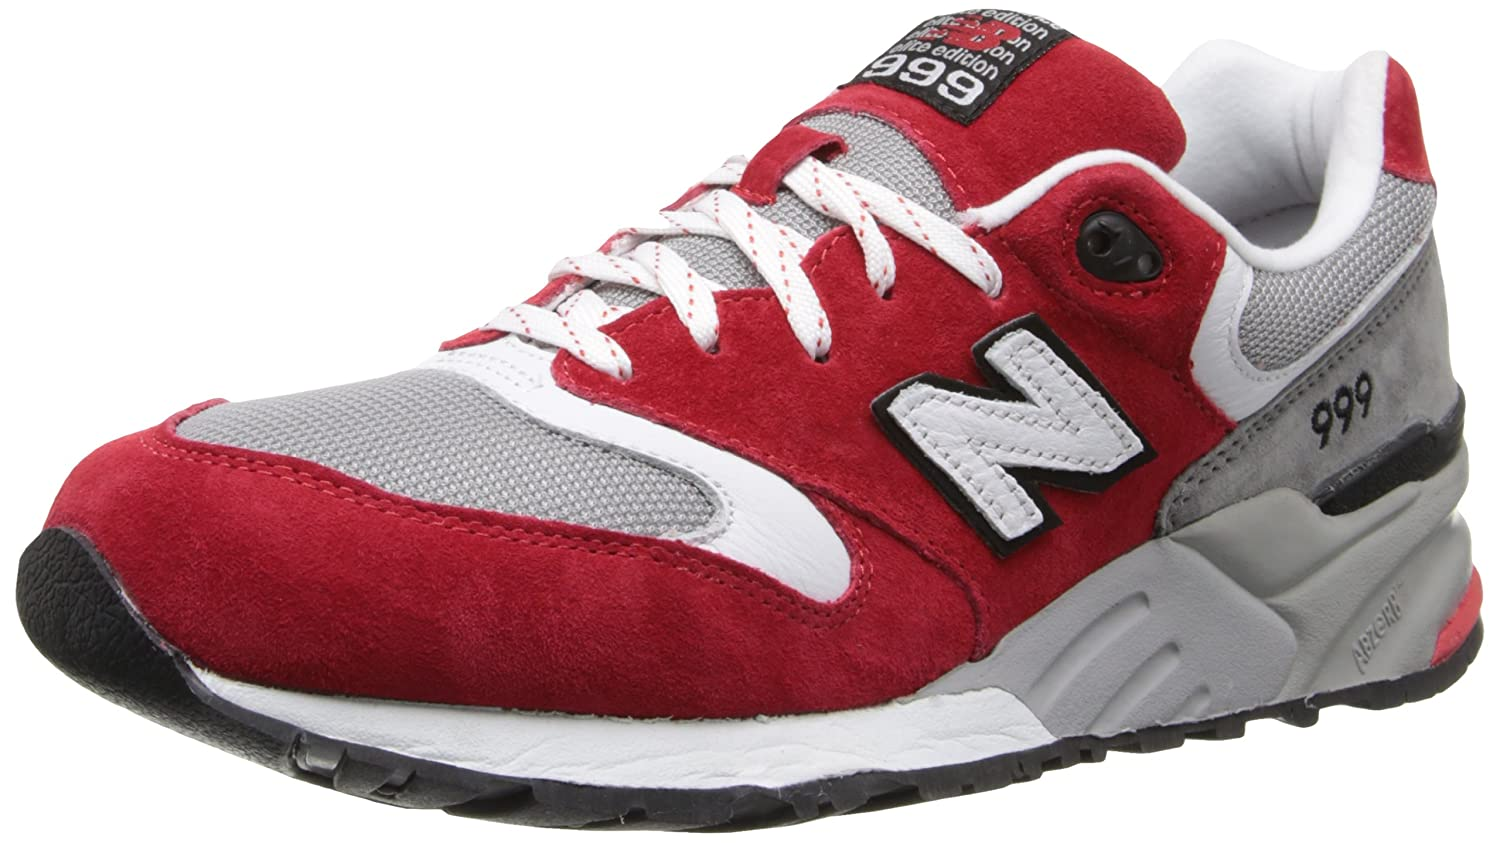 acheter en ligne 7300e 76825 New Balance Men's ML999 Running Shoe